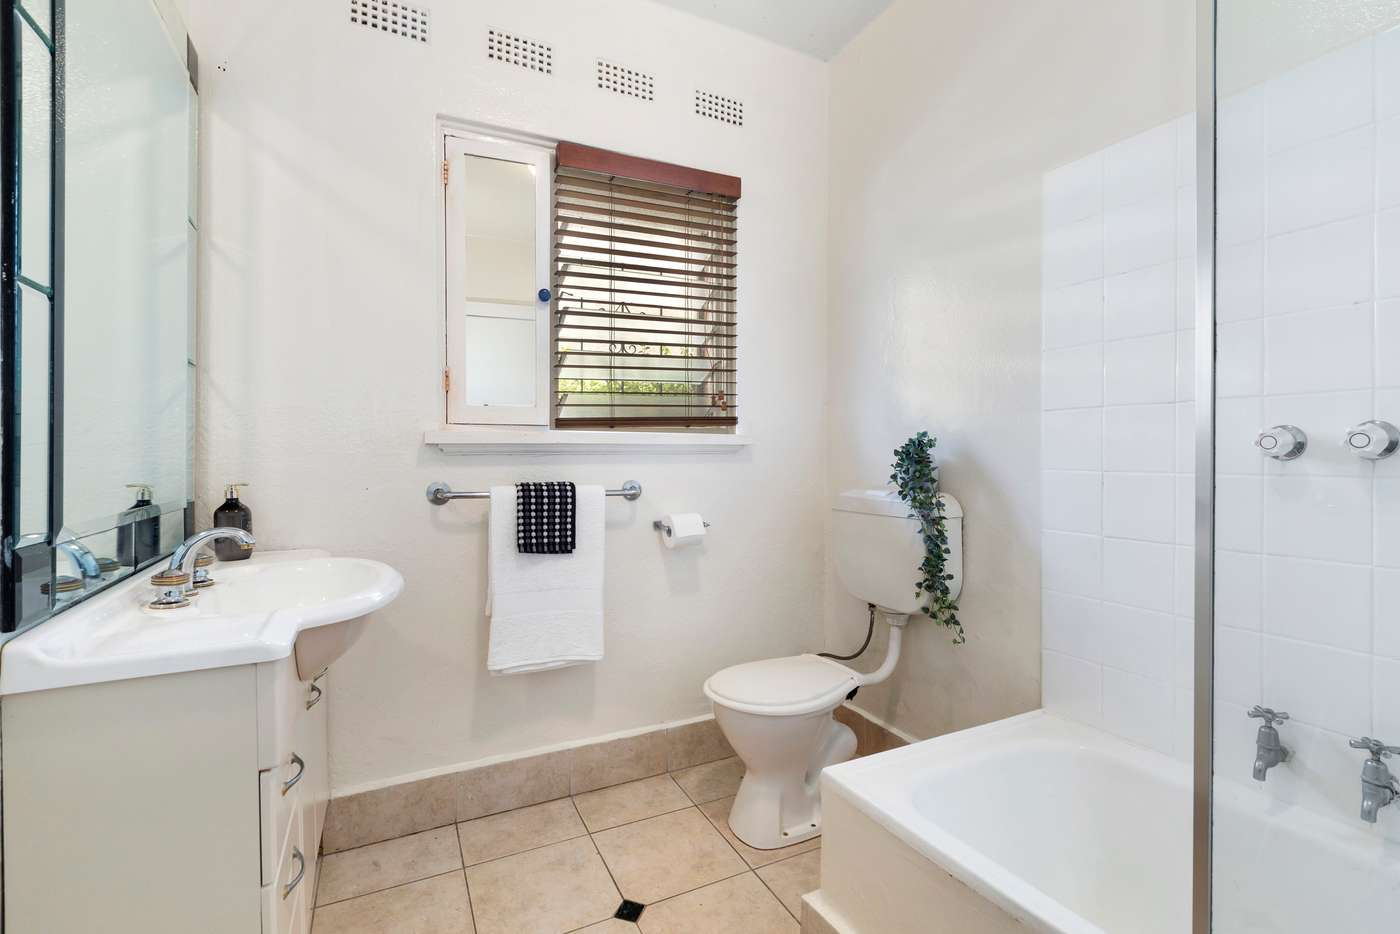 Fifth view of Homely apartment listing, 3/8 Cromwell Road, South Yarra VIC 3141